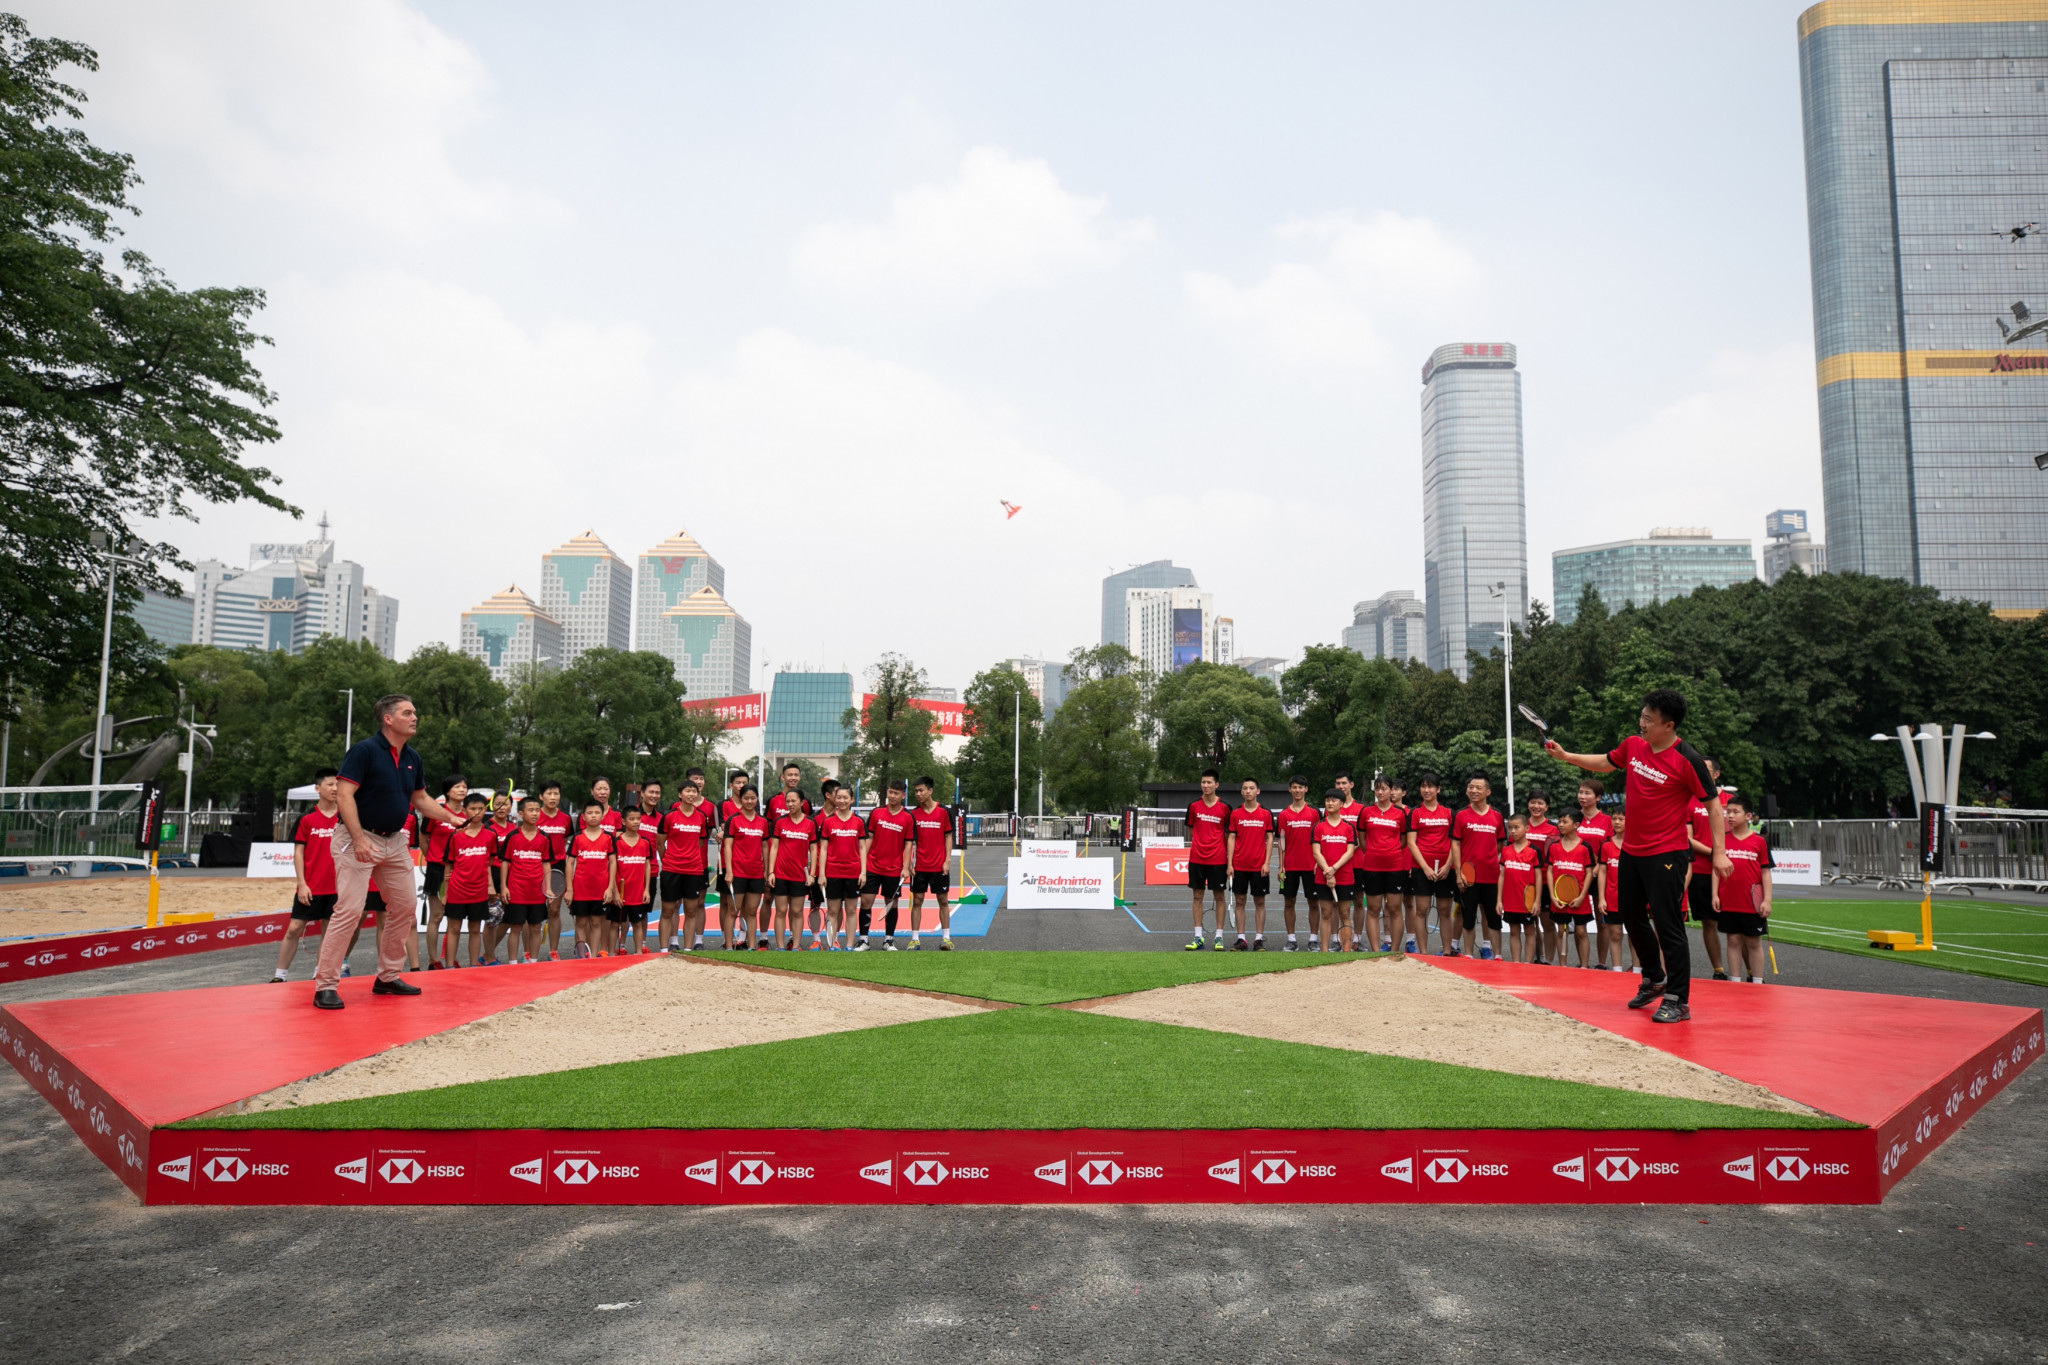 The Badminton World Federation launched AirBadminton in Guangzhou ©BWF